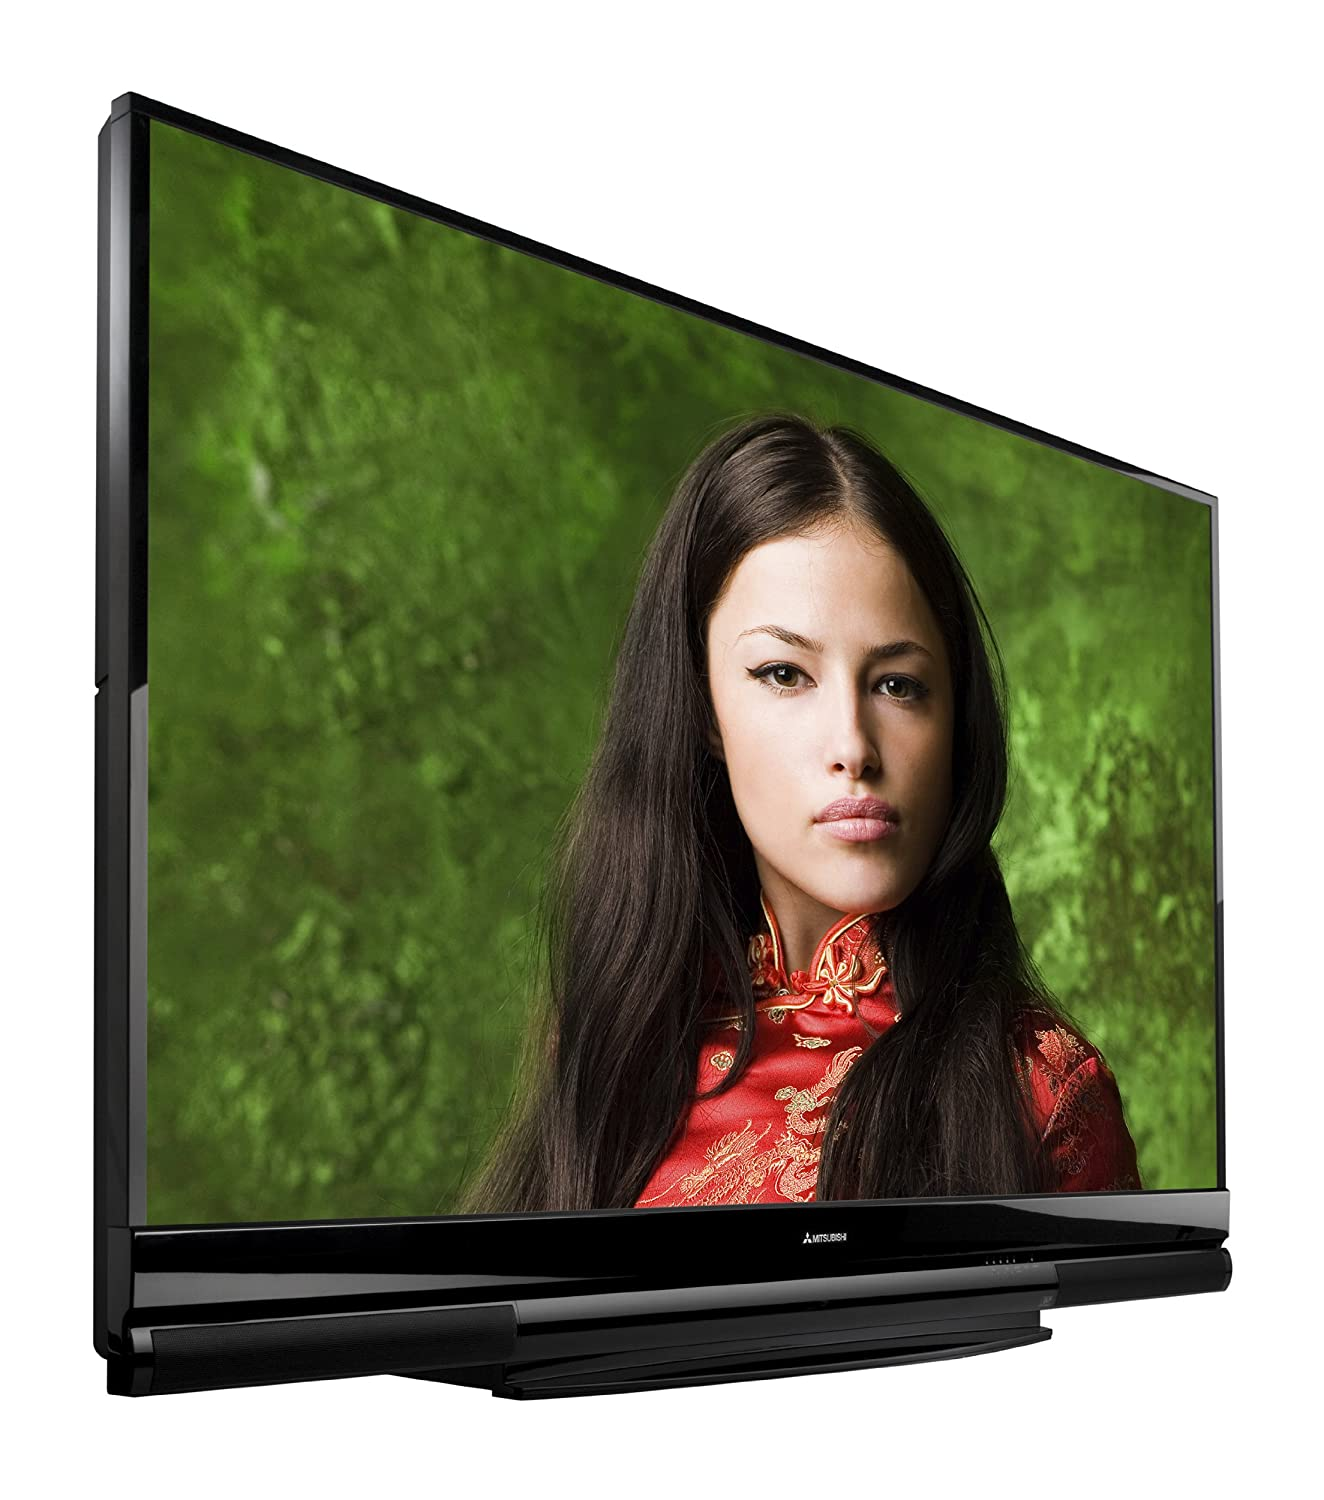 810z1v9vWwL._SL1500_ amazon com mitsubishi wd 73837 73 inch 1080p 120hz home theater  at creativeand.co